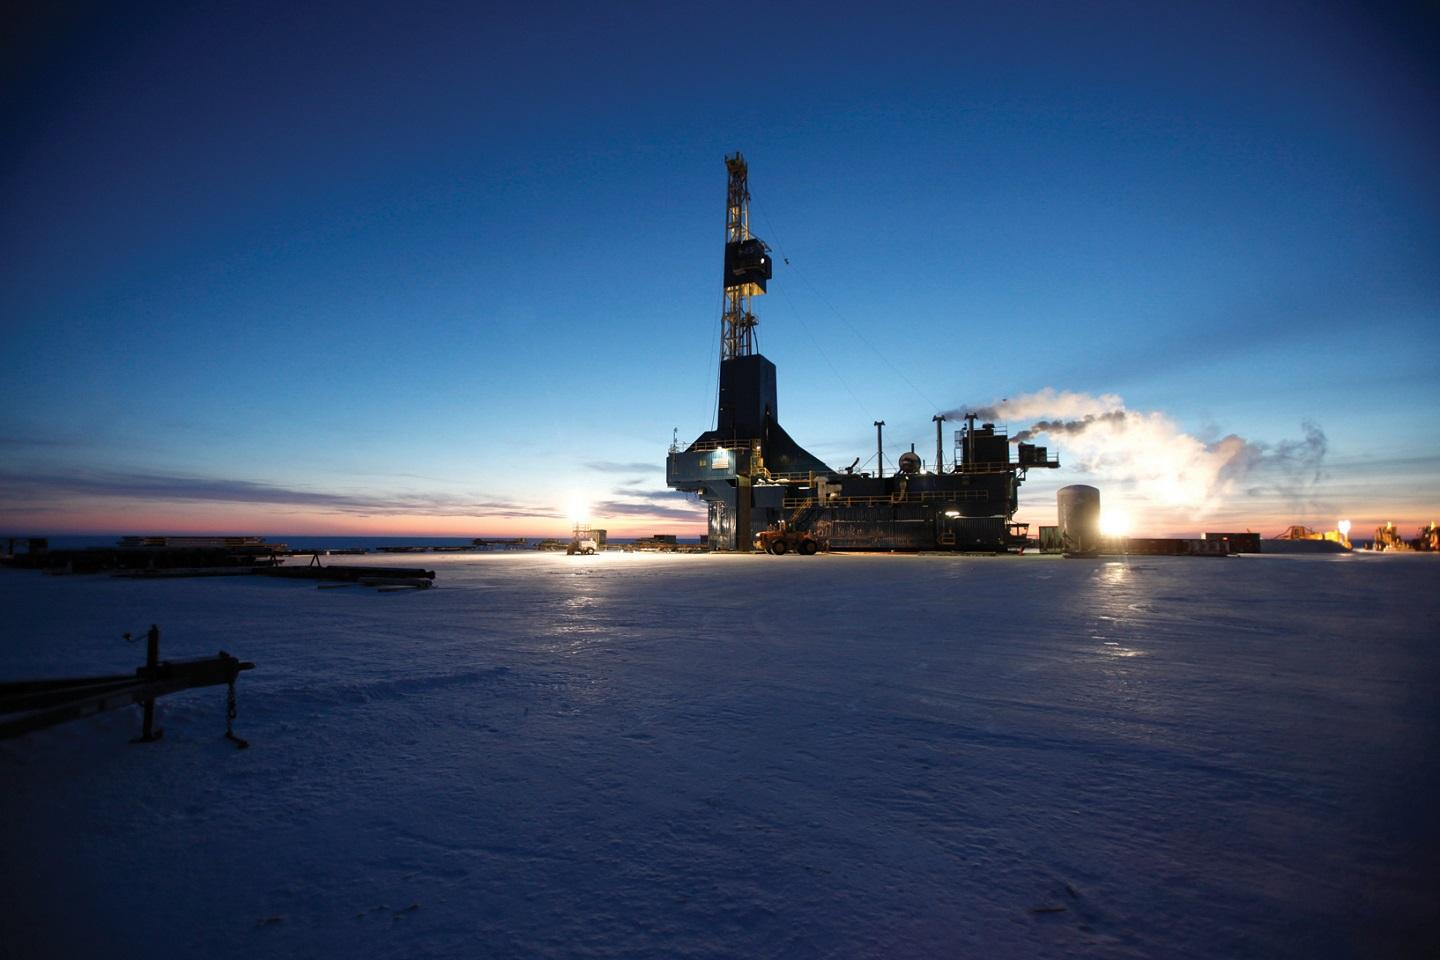 88 Energy completes Alaskan farm-out